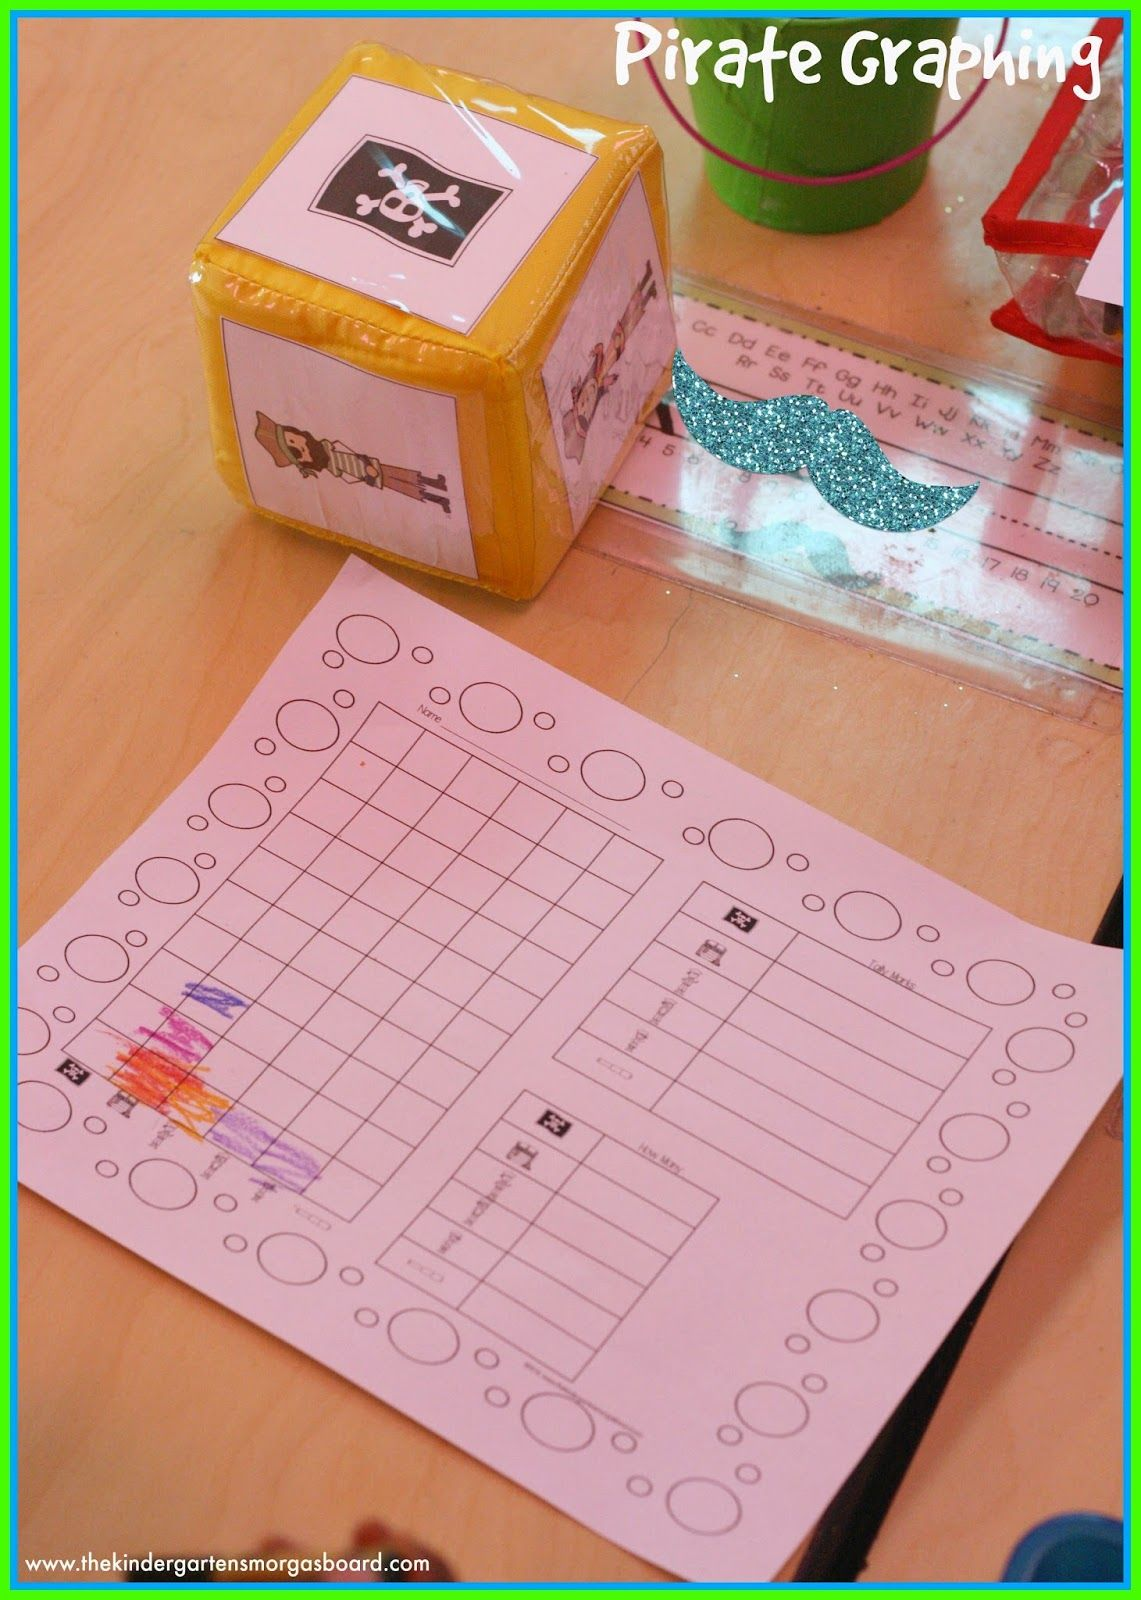 Pirate Graphing Freebie